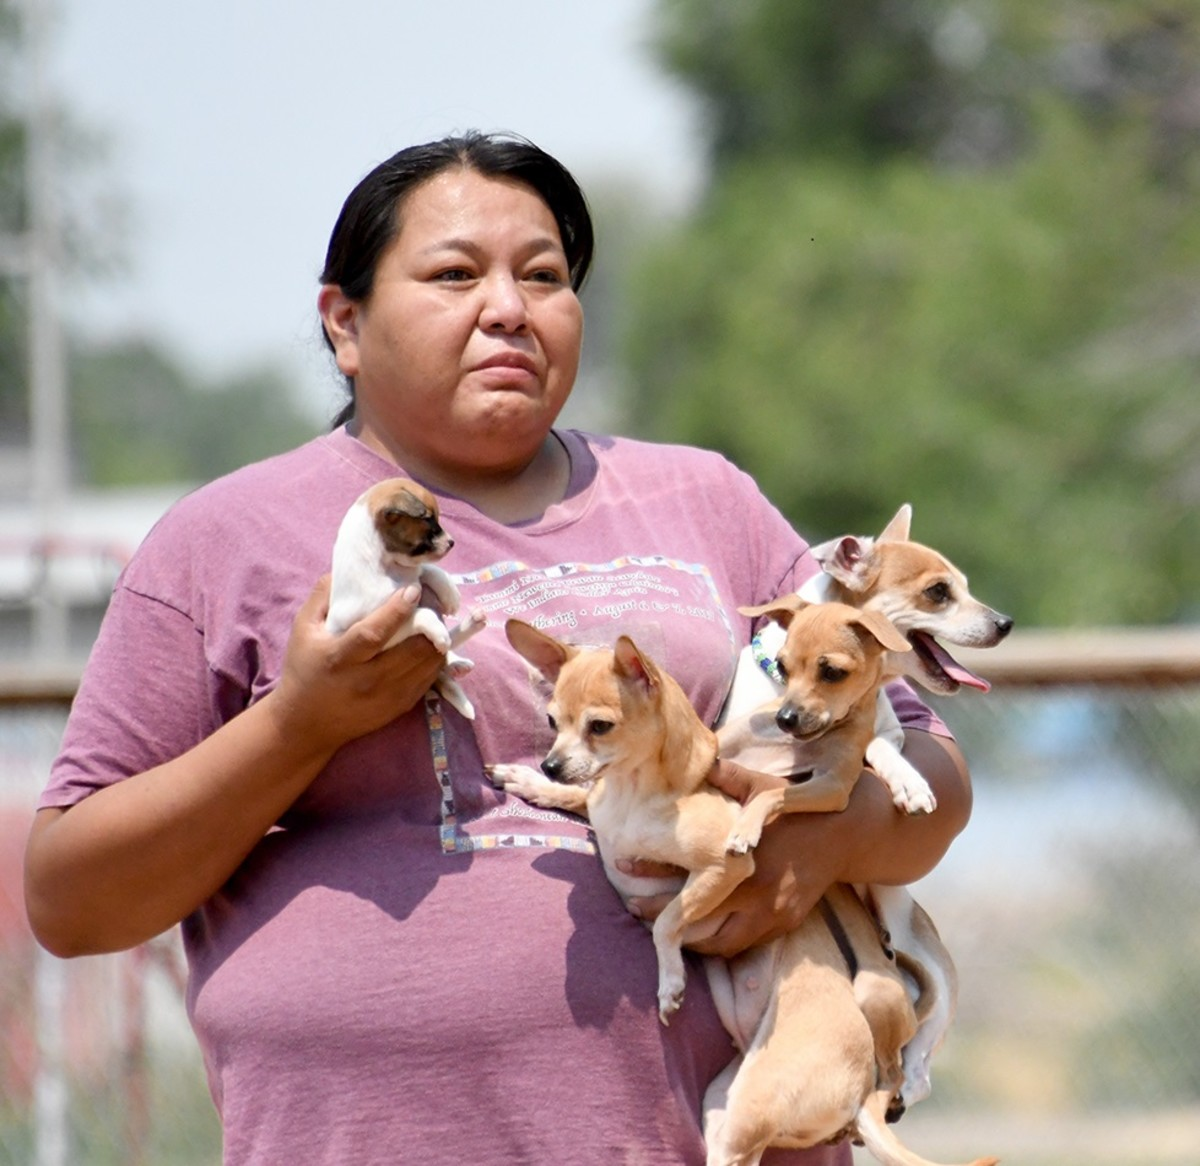 Wynter Begay clasps her Chihuahua puppy, Nadia, in one hand and holds the pup's parents and older sibling on the other arm at the Rez Dog competition Friday, July 23, 2021, at the Shoshone-Bannock Tribes' lands at Fort Hall, Idaho. Nadia won the Smallest Rez Dog contest. (Photo by Lori Edmo for Indian Country Today)